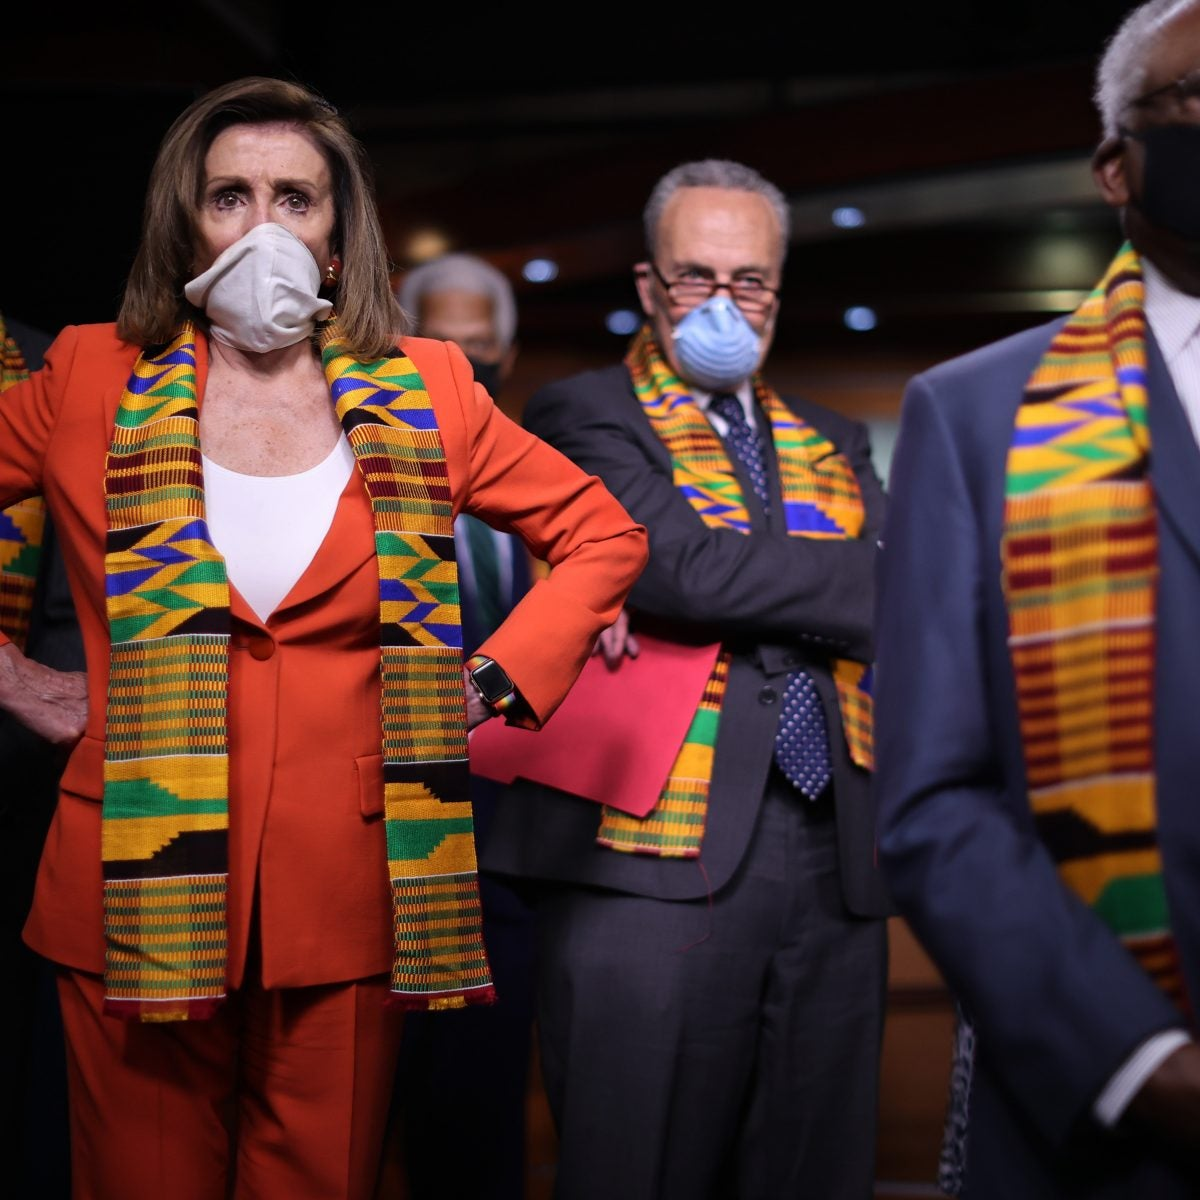 Donning Kente Cloth Congressional Democrats Unveil Police Reform